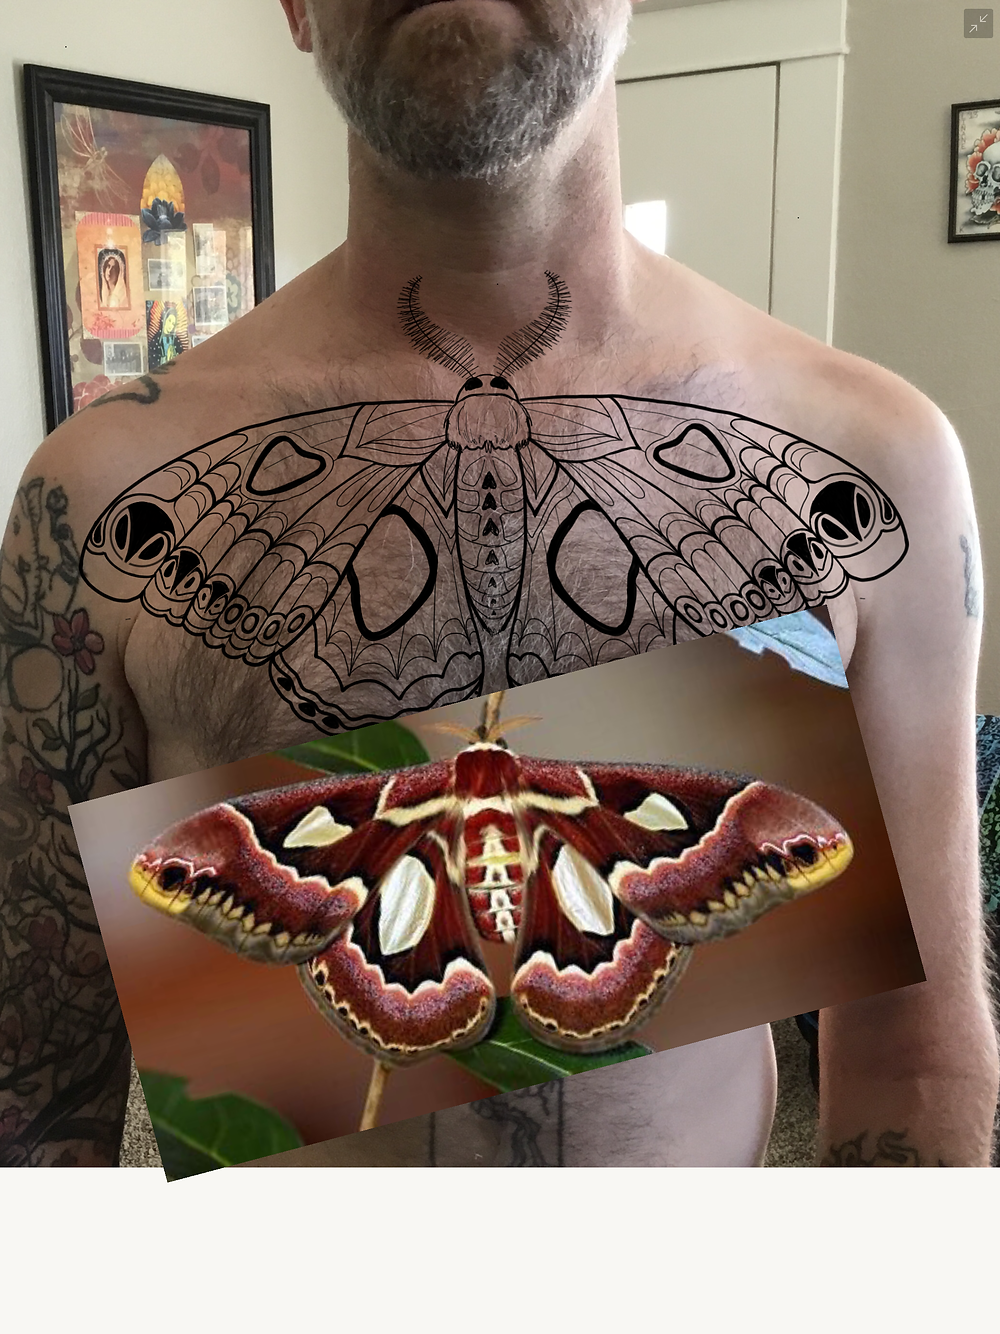 Ryan's chest piece mock-up with IPad